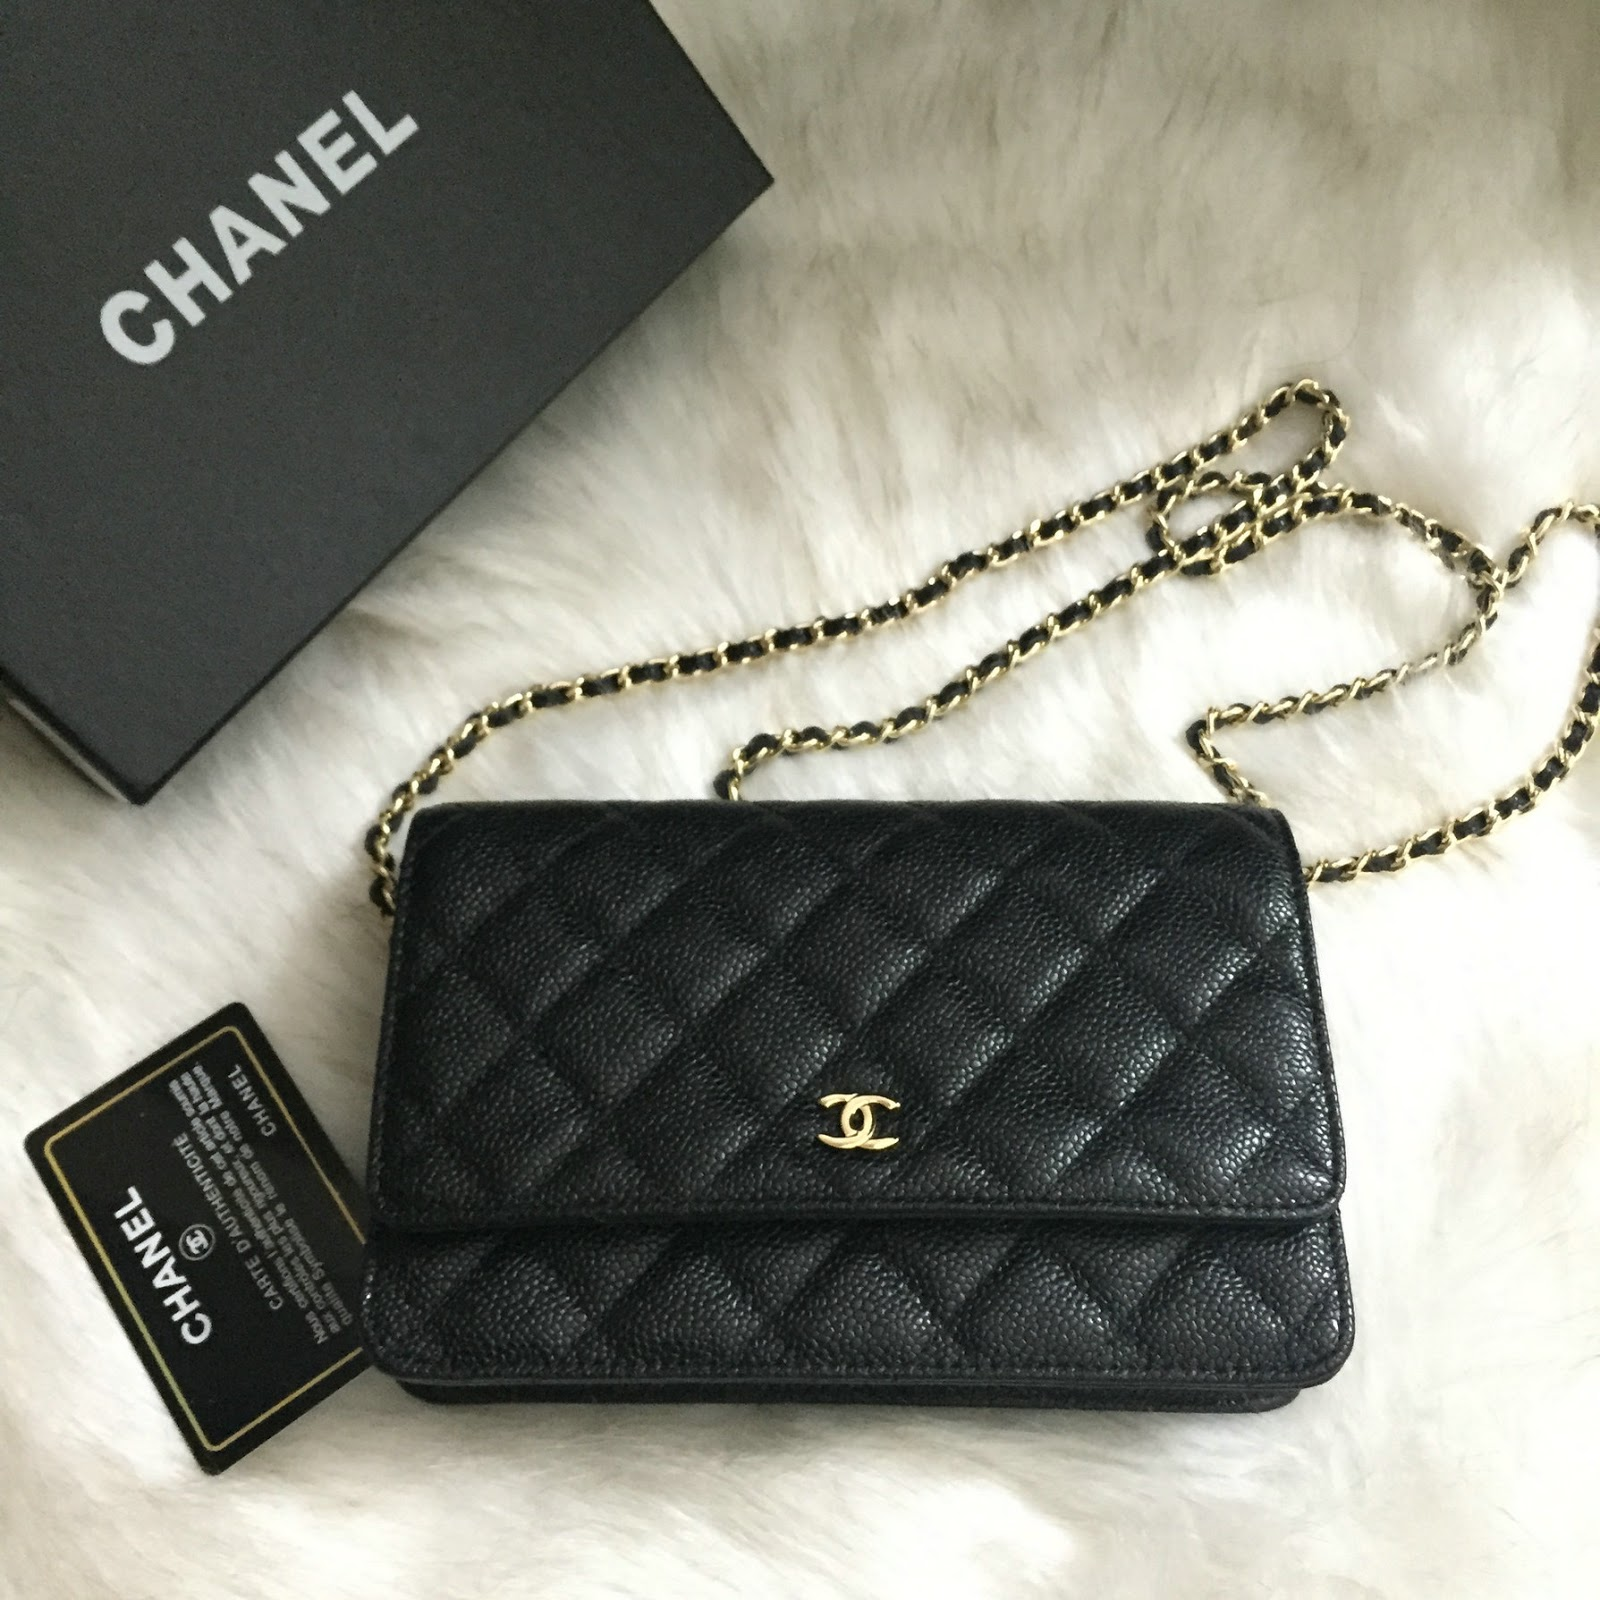 Pre Shipment Photos Of Chanel Woc 20cm In Caviar Leather Best Original Quality